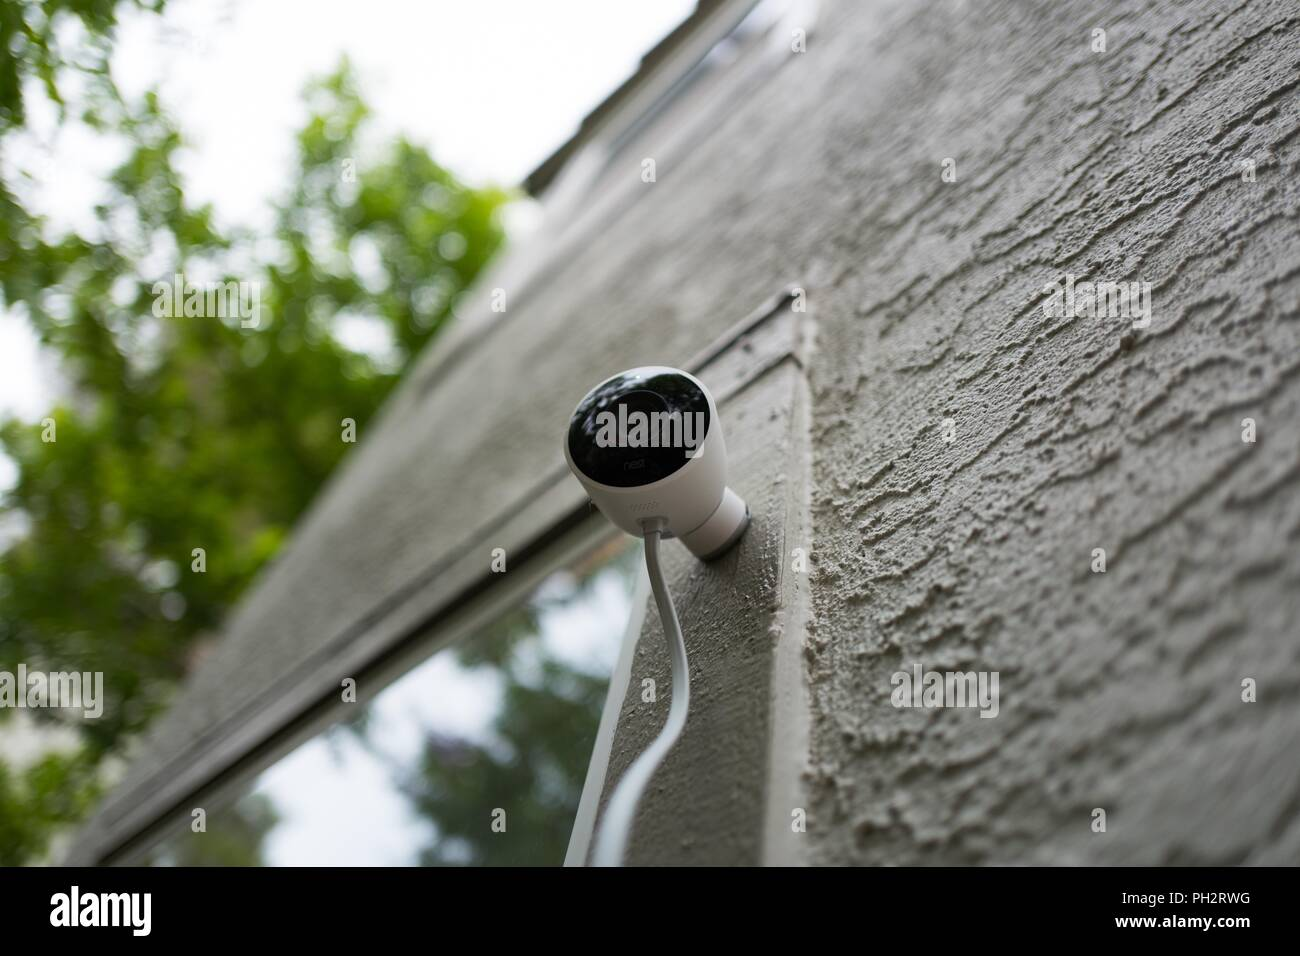 Low-angle view of weatherproof outdoor Nest home surveillance camera from Google Inc installed in a smart home in San Ramon, California, August 21, 2018. () - Stock Image